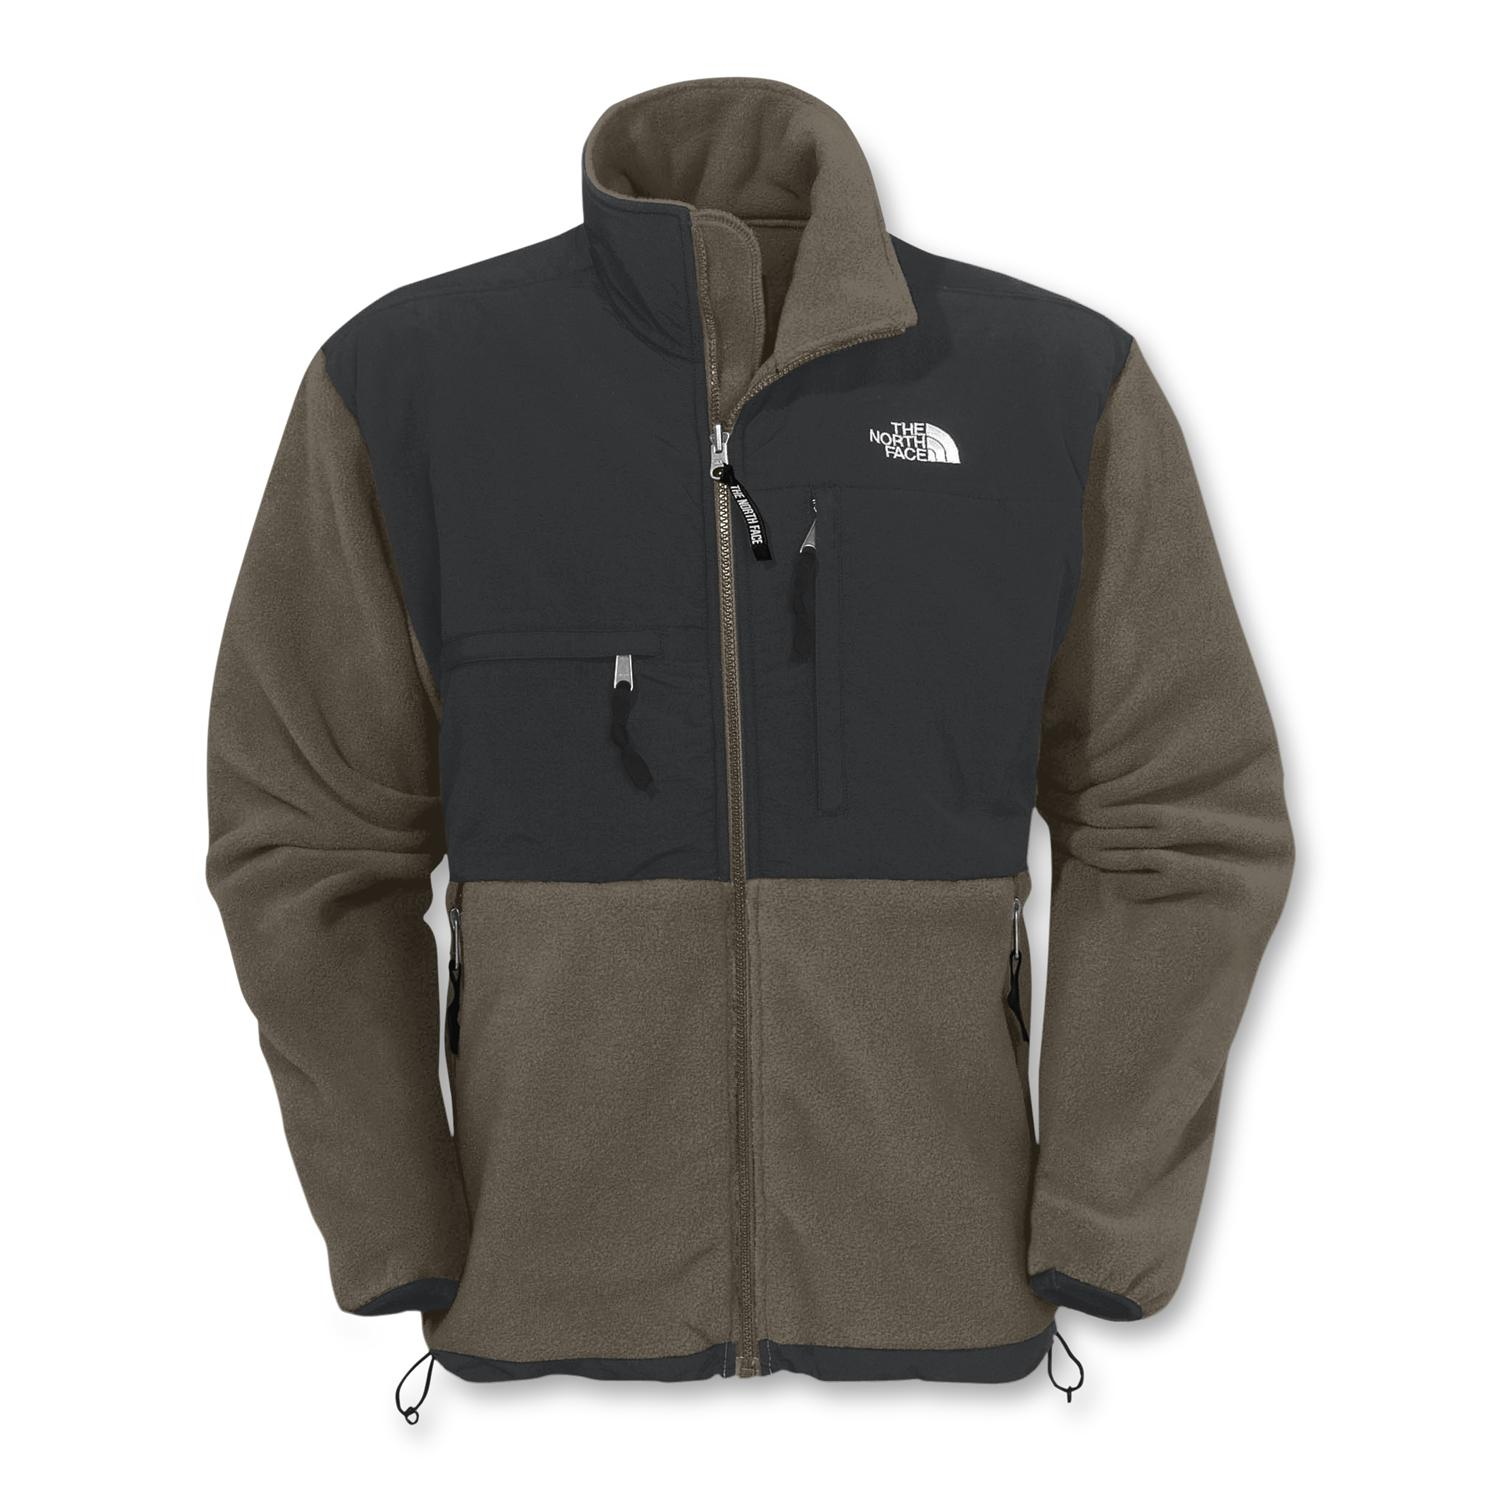 Outdoor clothing outlet online